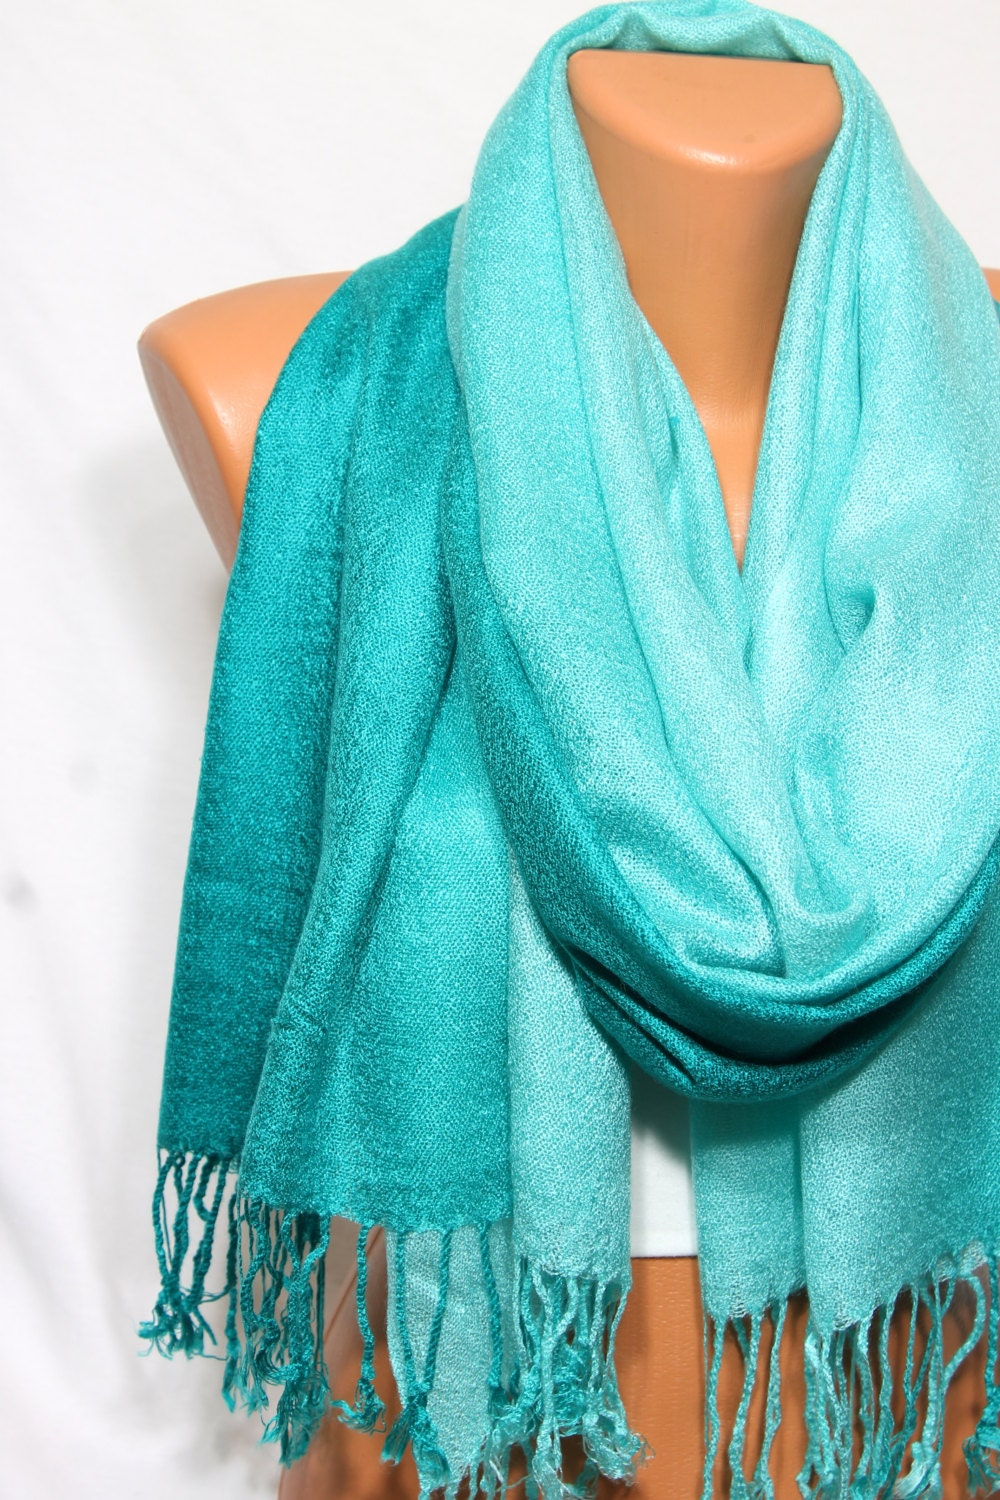 teal aqua scarf shawl fall winter fashion fashion